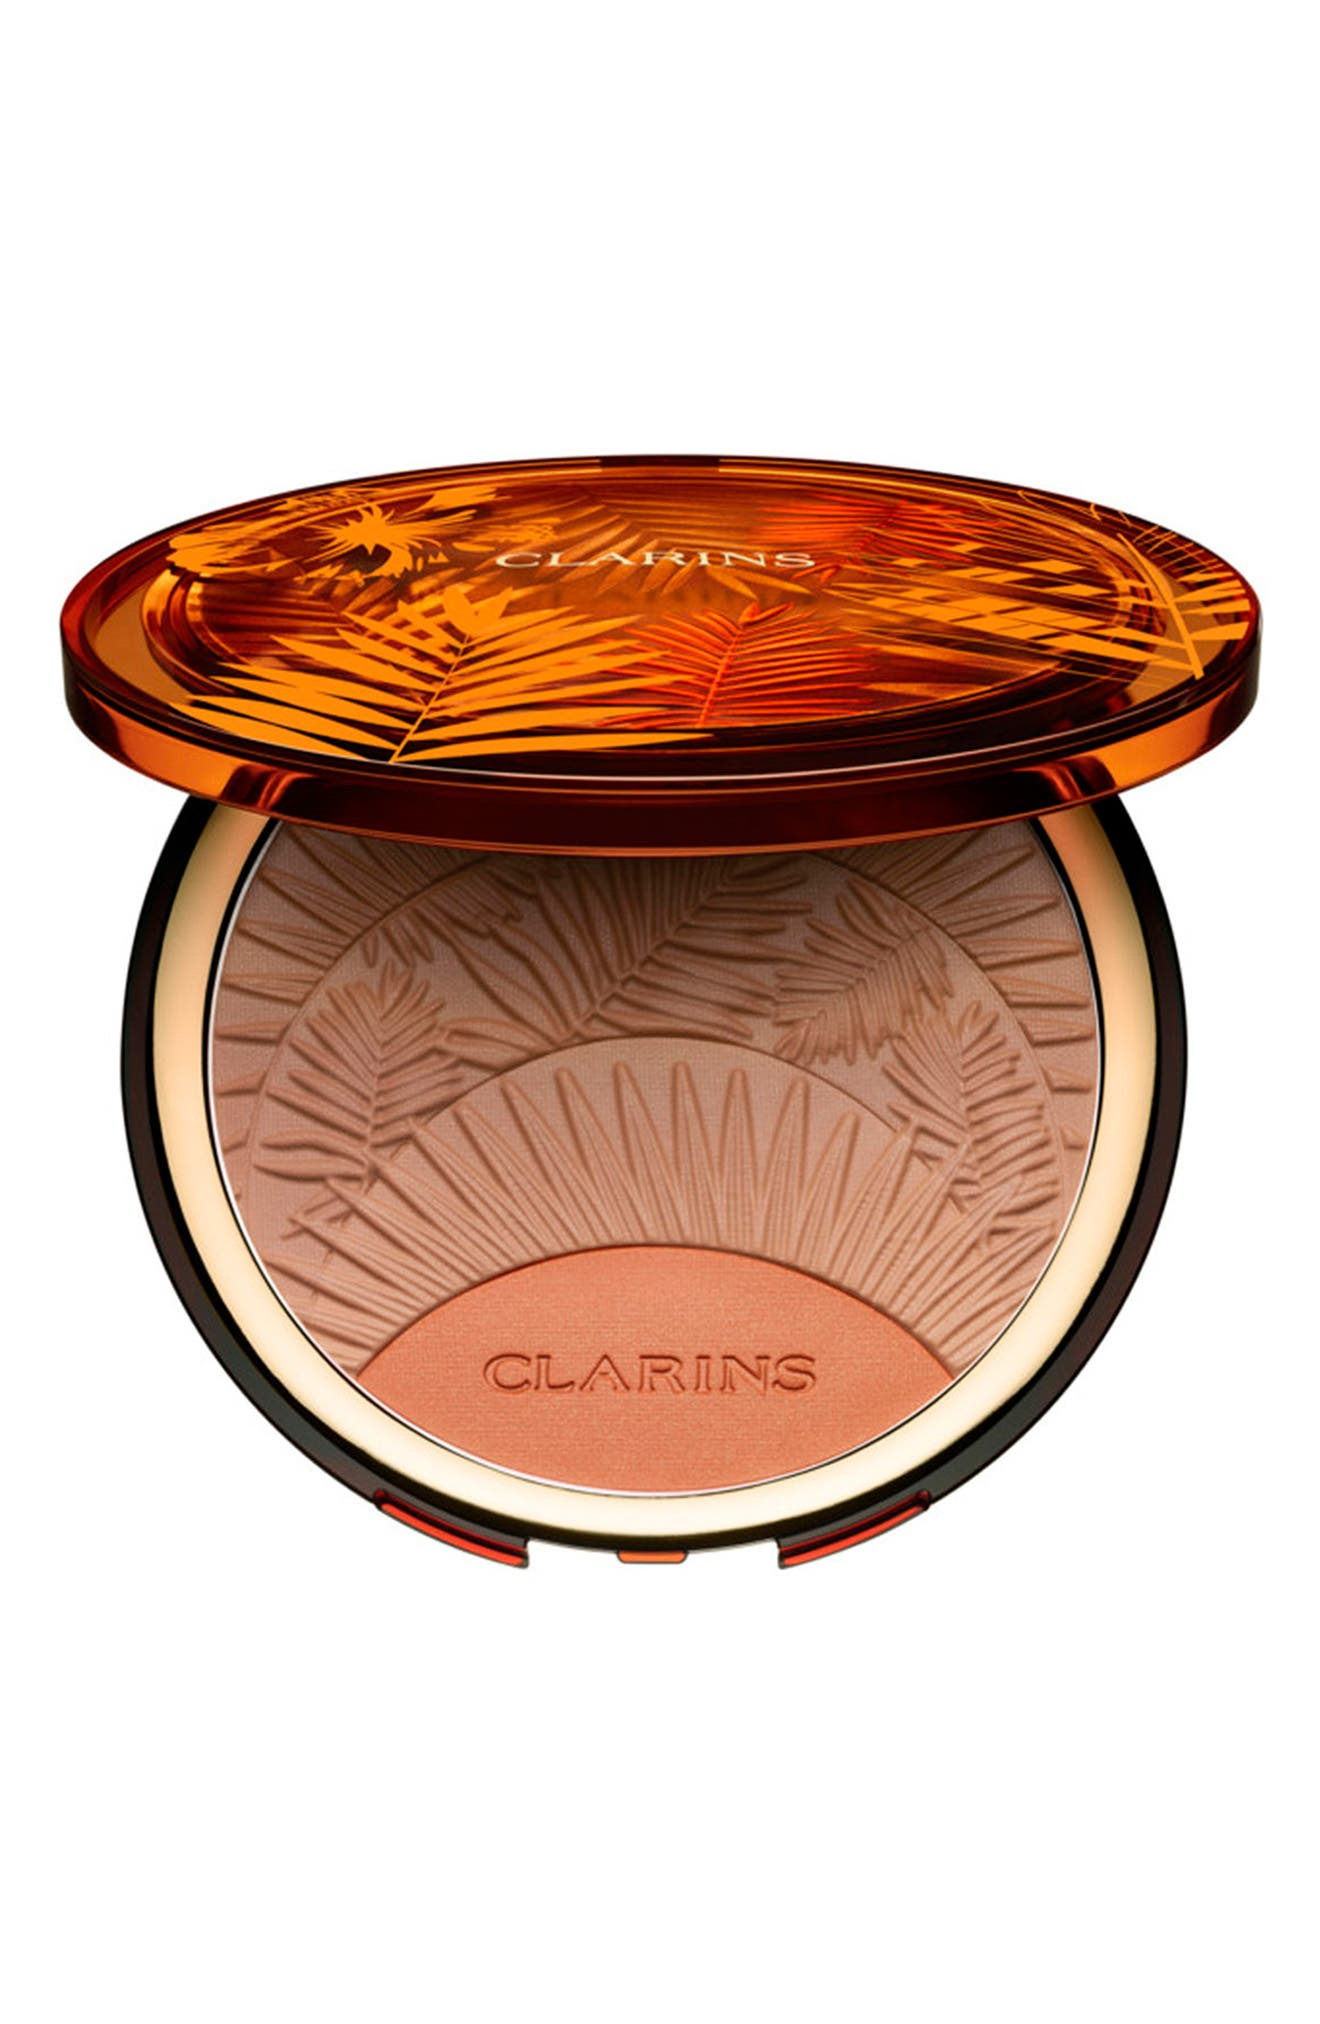 Main Image - Clarins Sunkissed Bronzing & Blush Compact